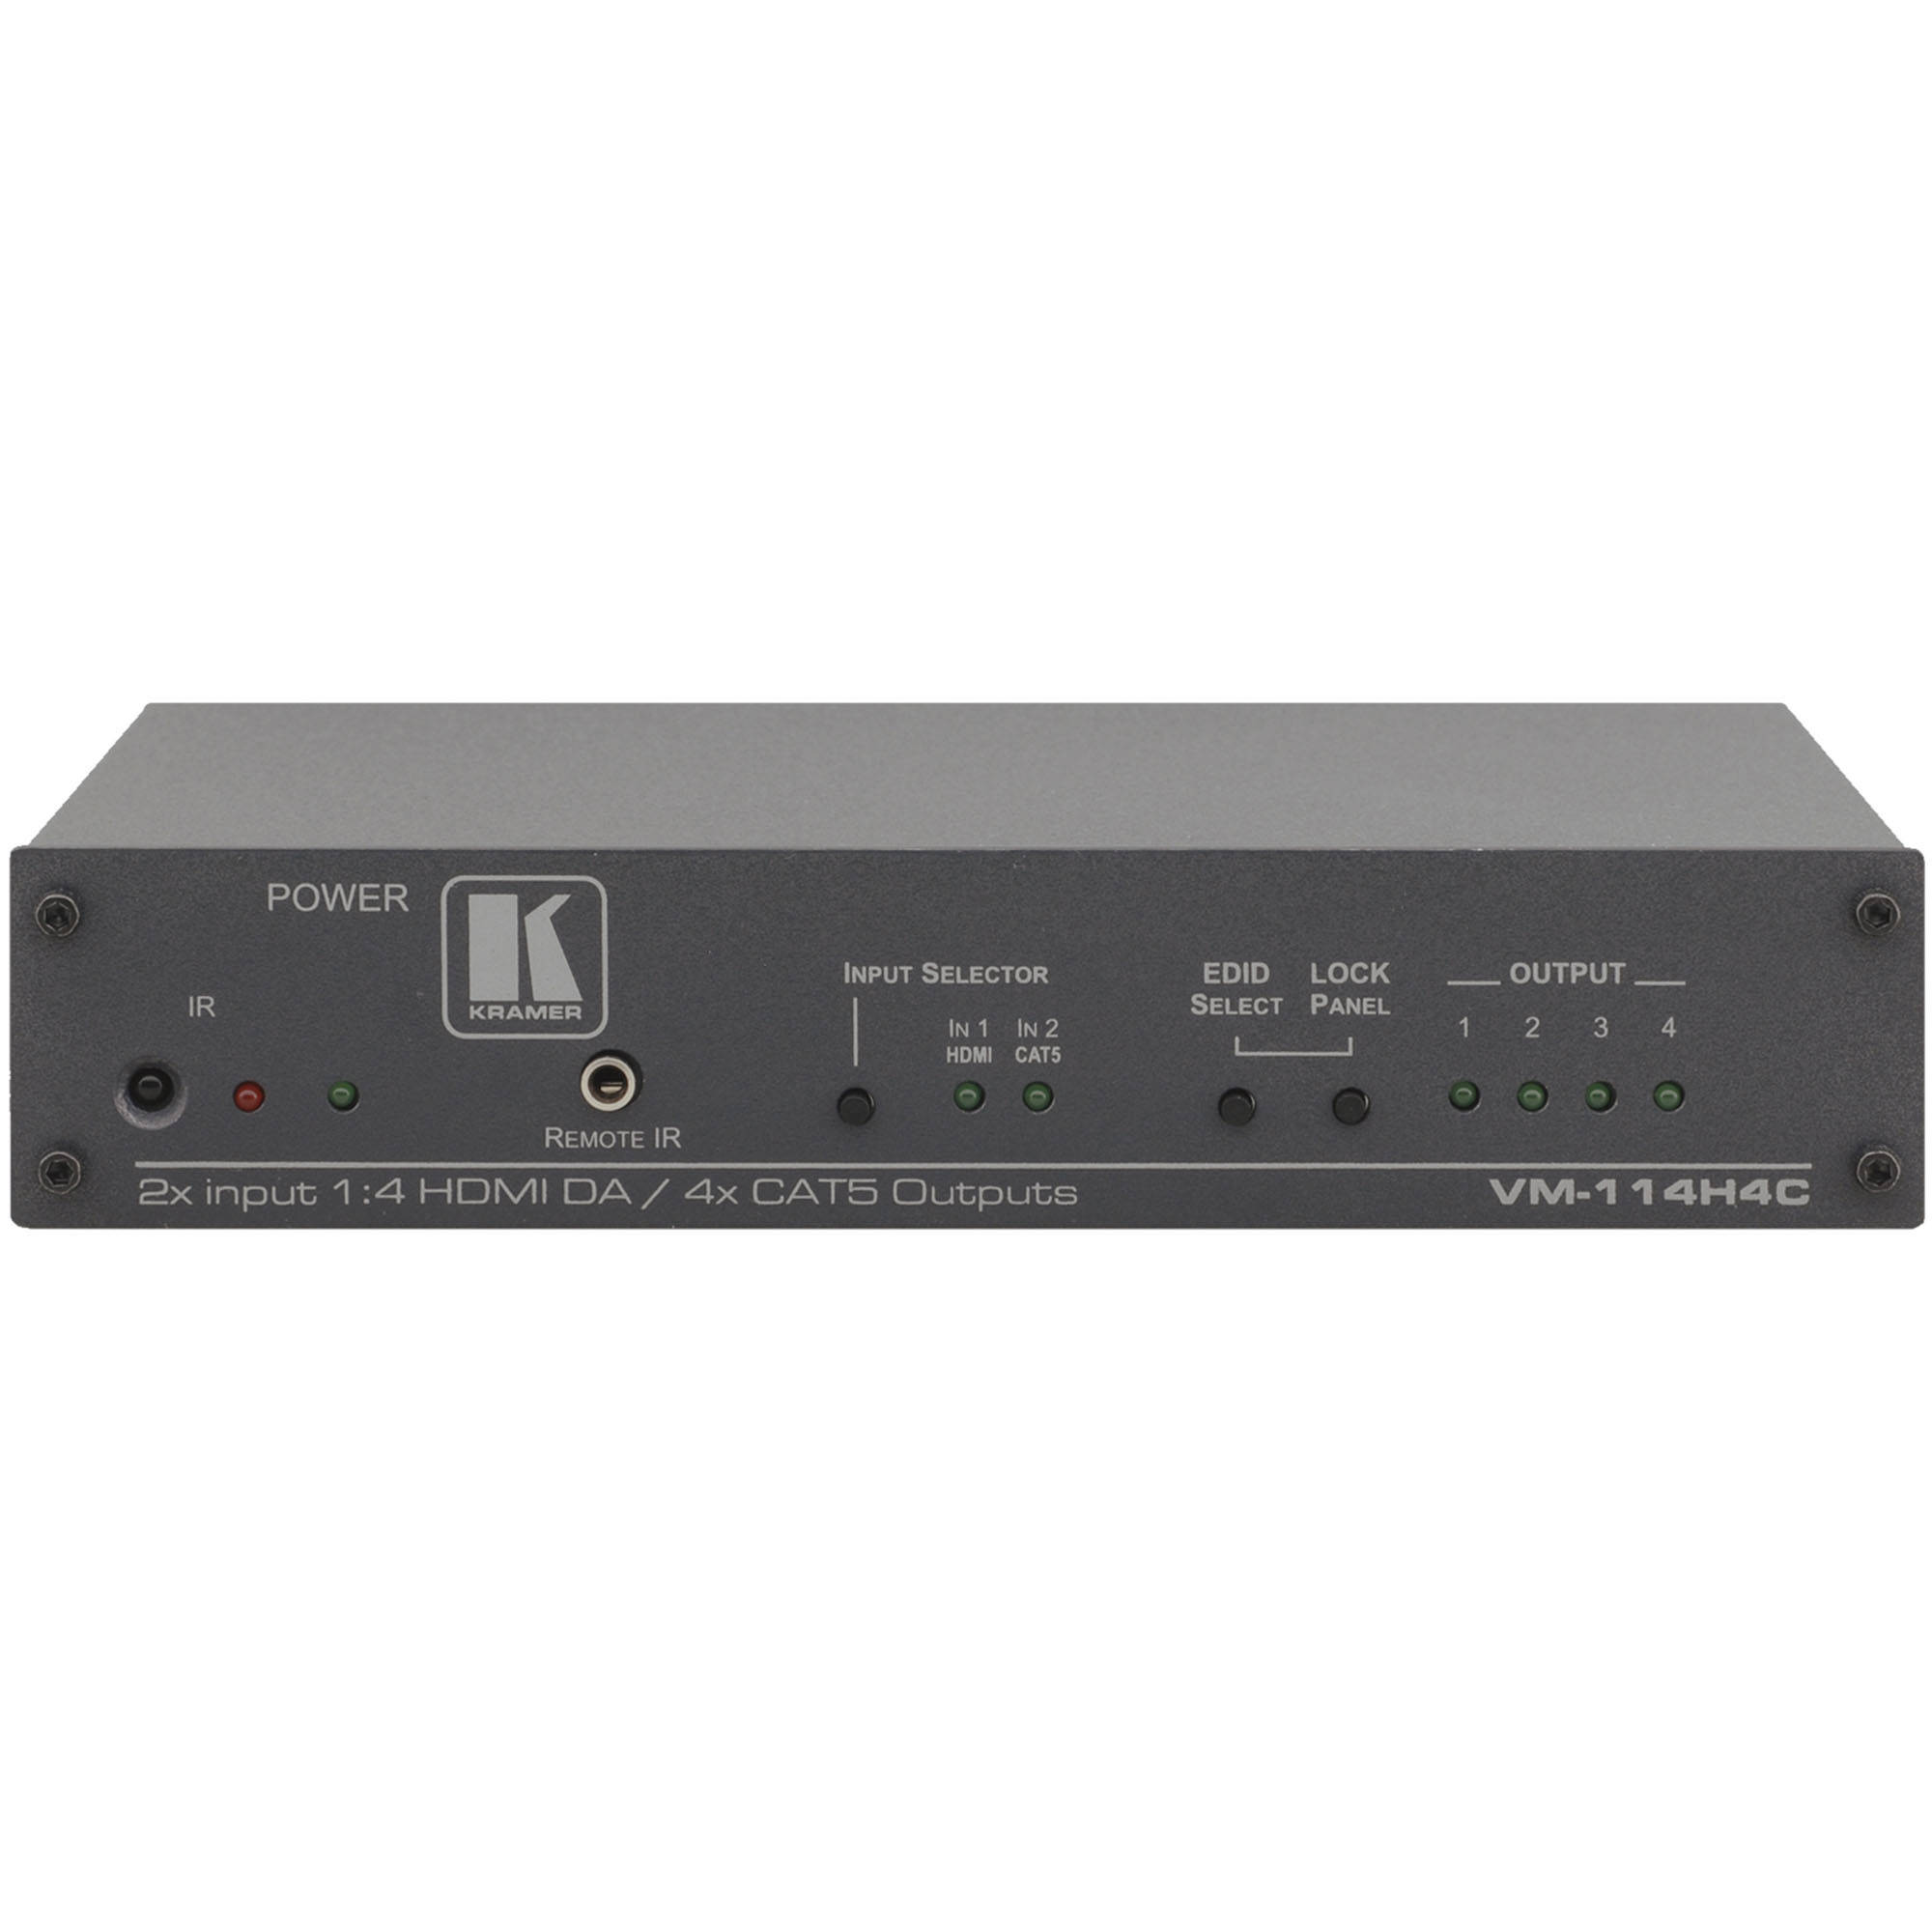 93 2 Input 1 Output Audio Ultra High Quality Two Way Vga Switch 3 Video Box Kramer 14 Hdmi Twisted Pair Transmitter Distribution Amplifier